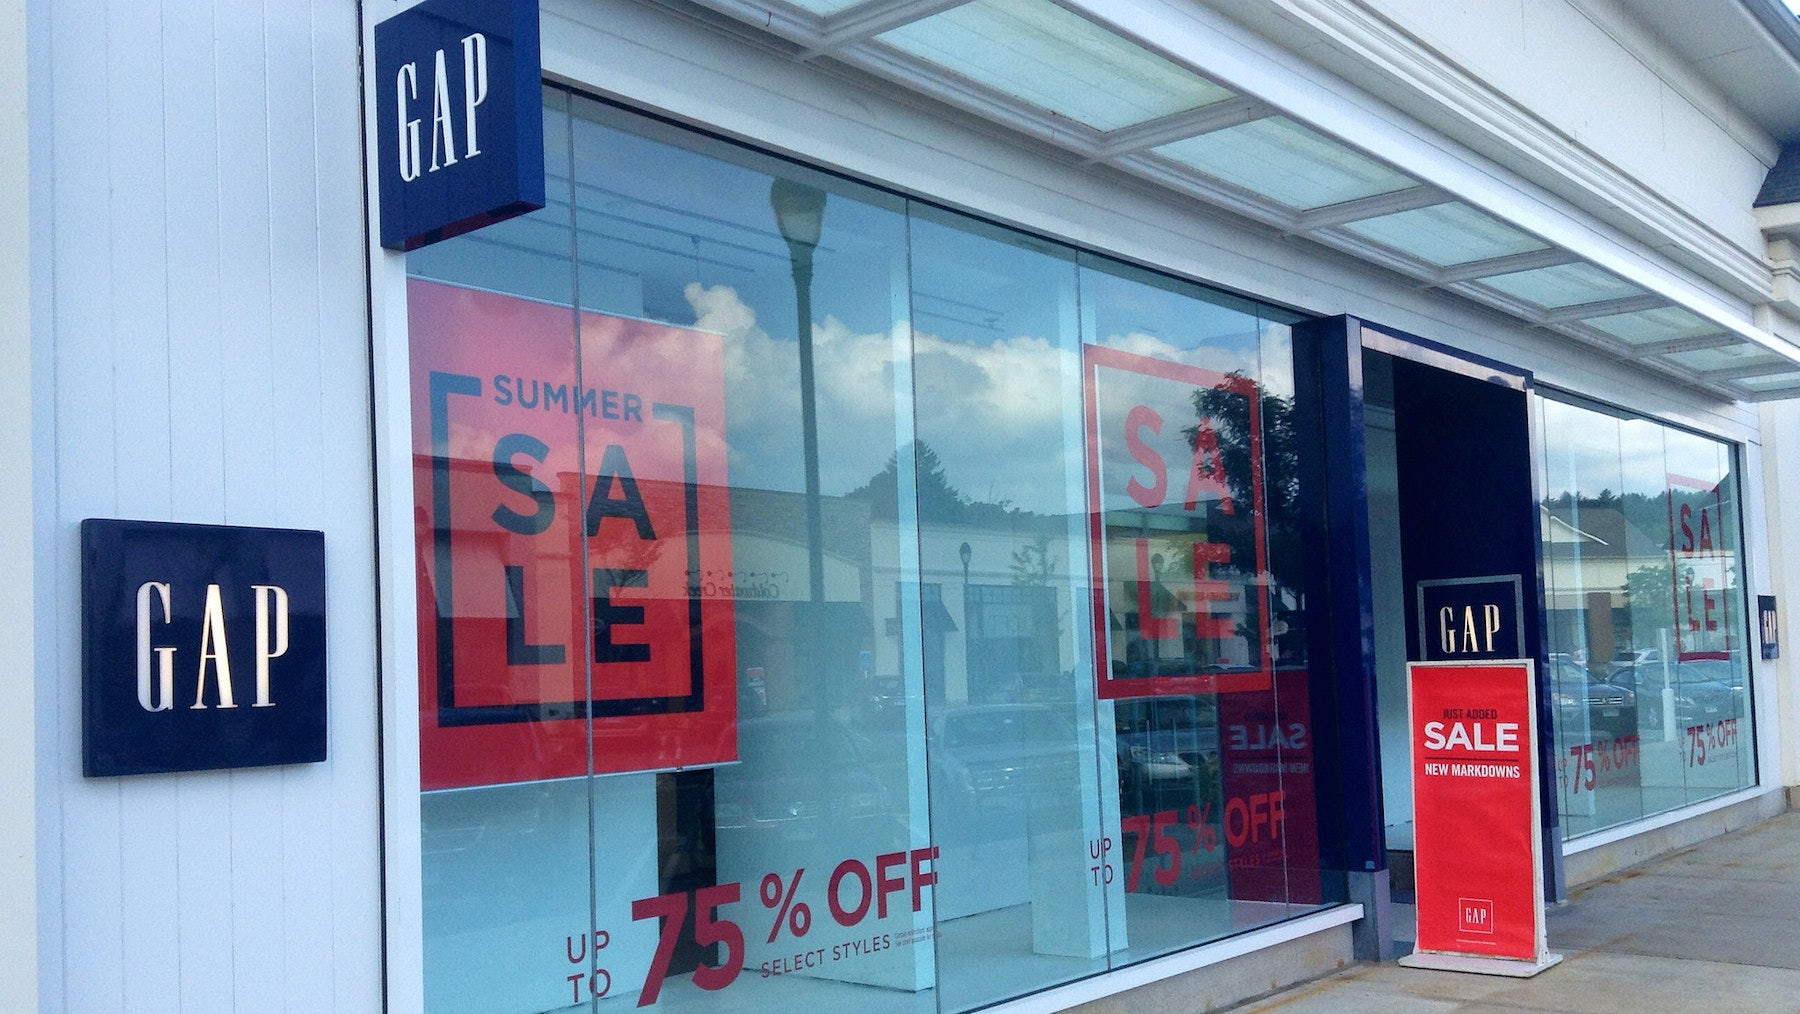 A Gap store in Connecticut  | Source: Flickr/Mike Mozart